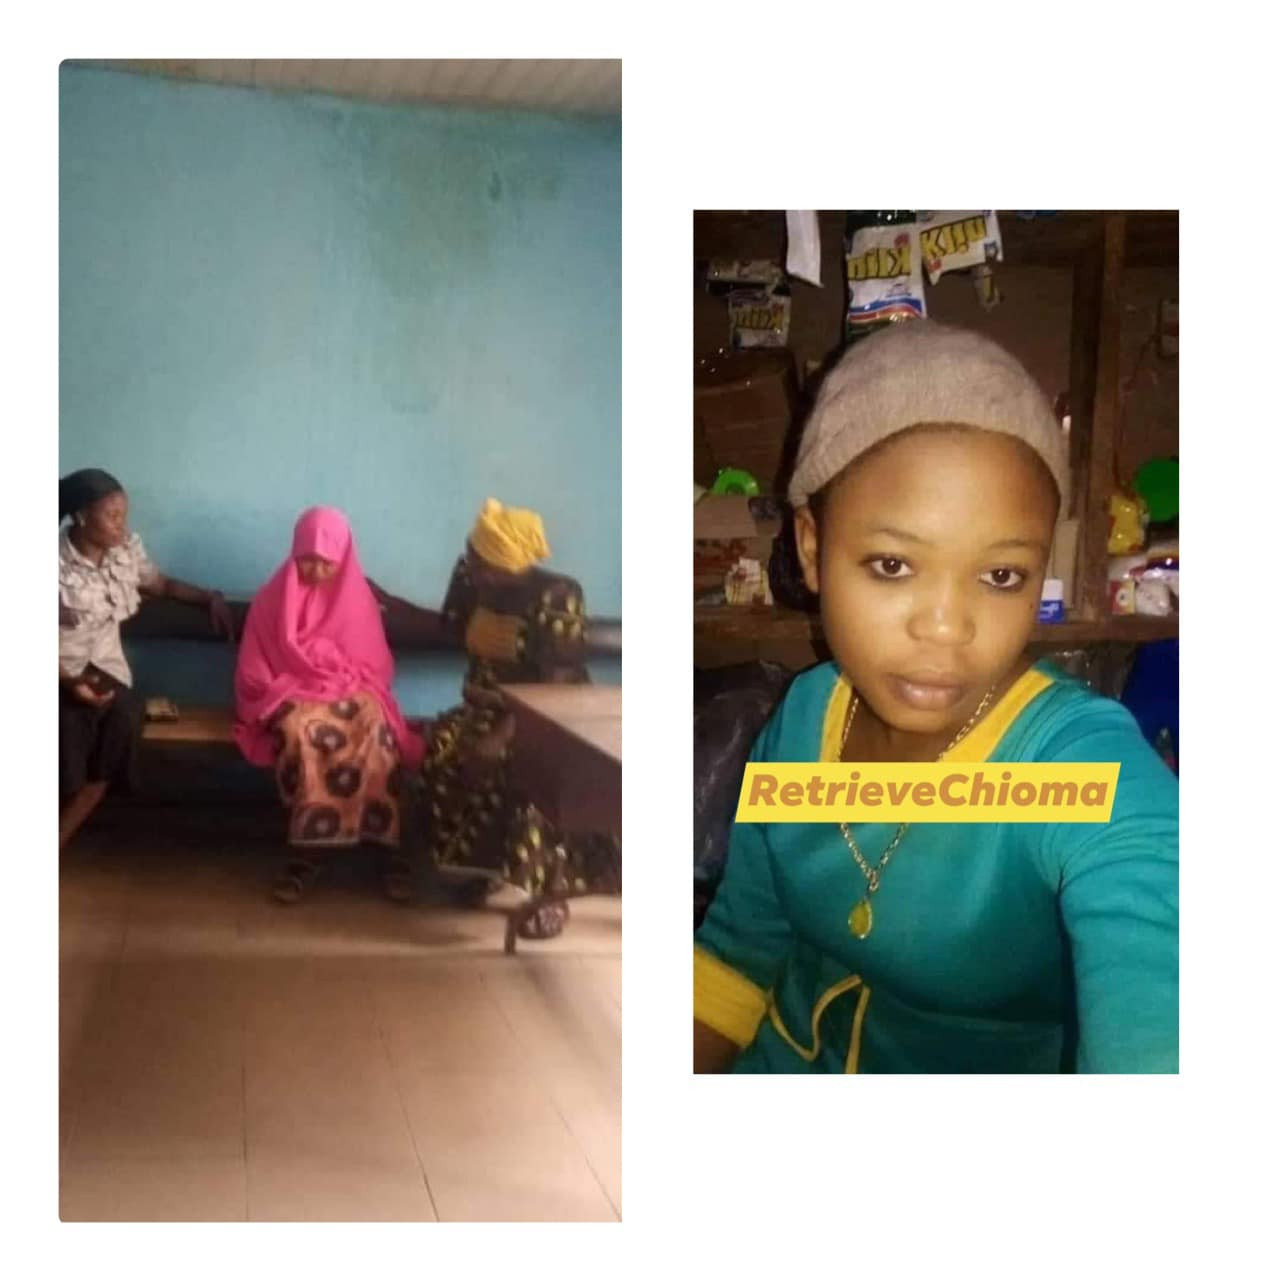 15-year-old secondary school student allegedly abducted in Enugu, forcefully converted to Islam and about to be married off in Kaduna